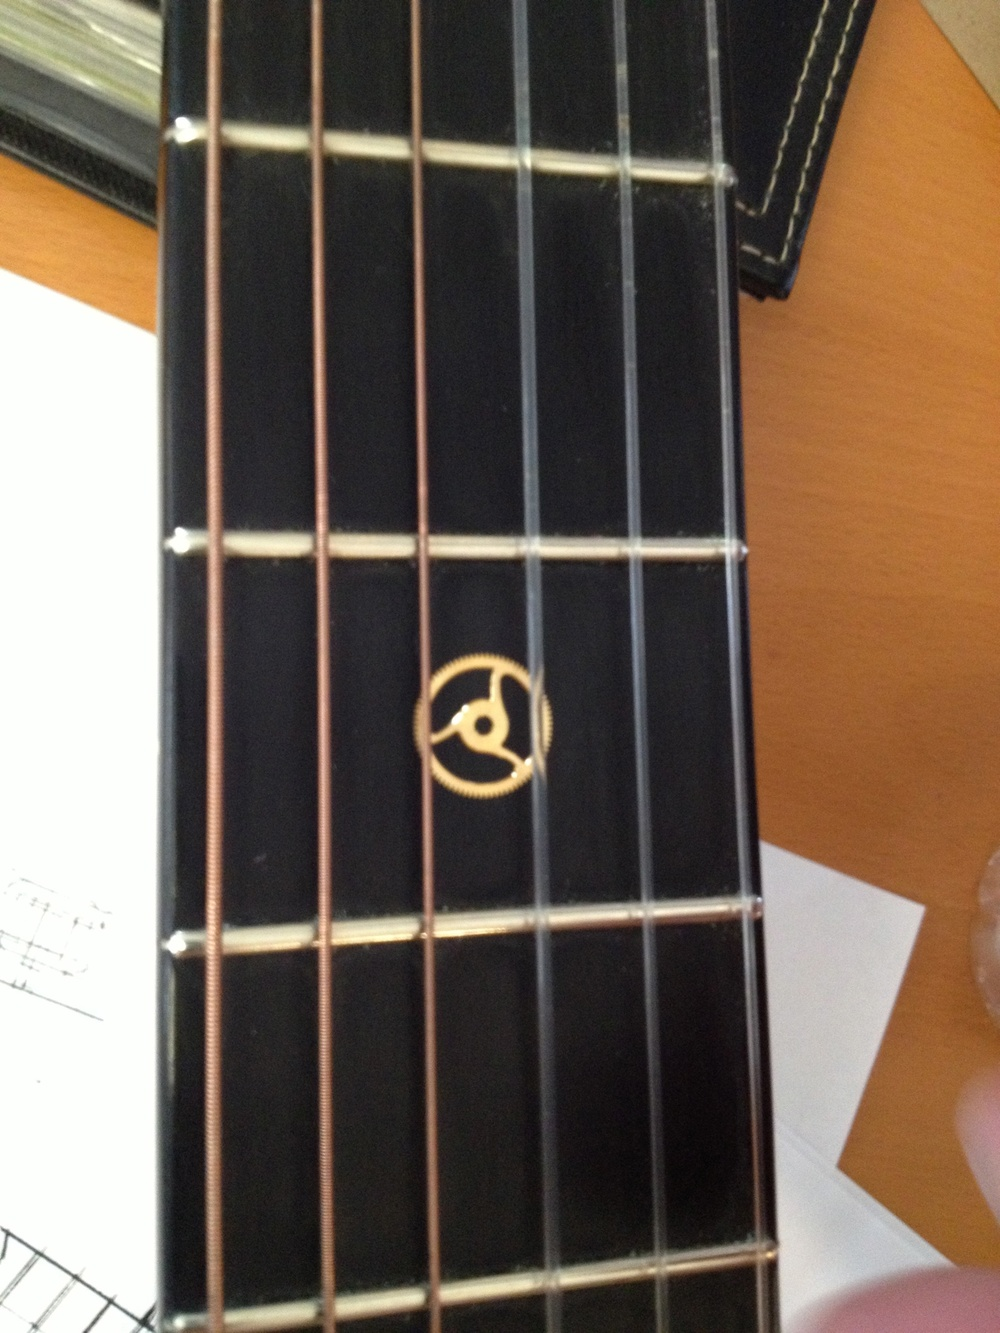 Placement considerations for actual movement pieces on an ebony fret board.